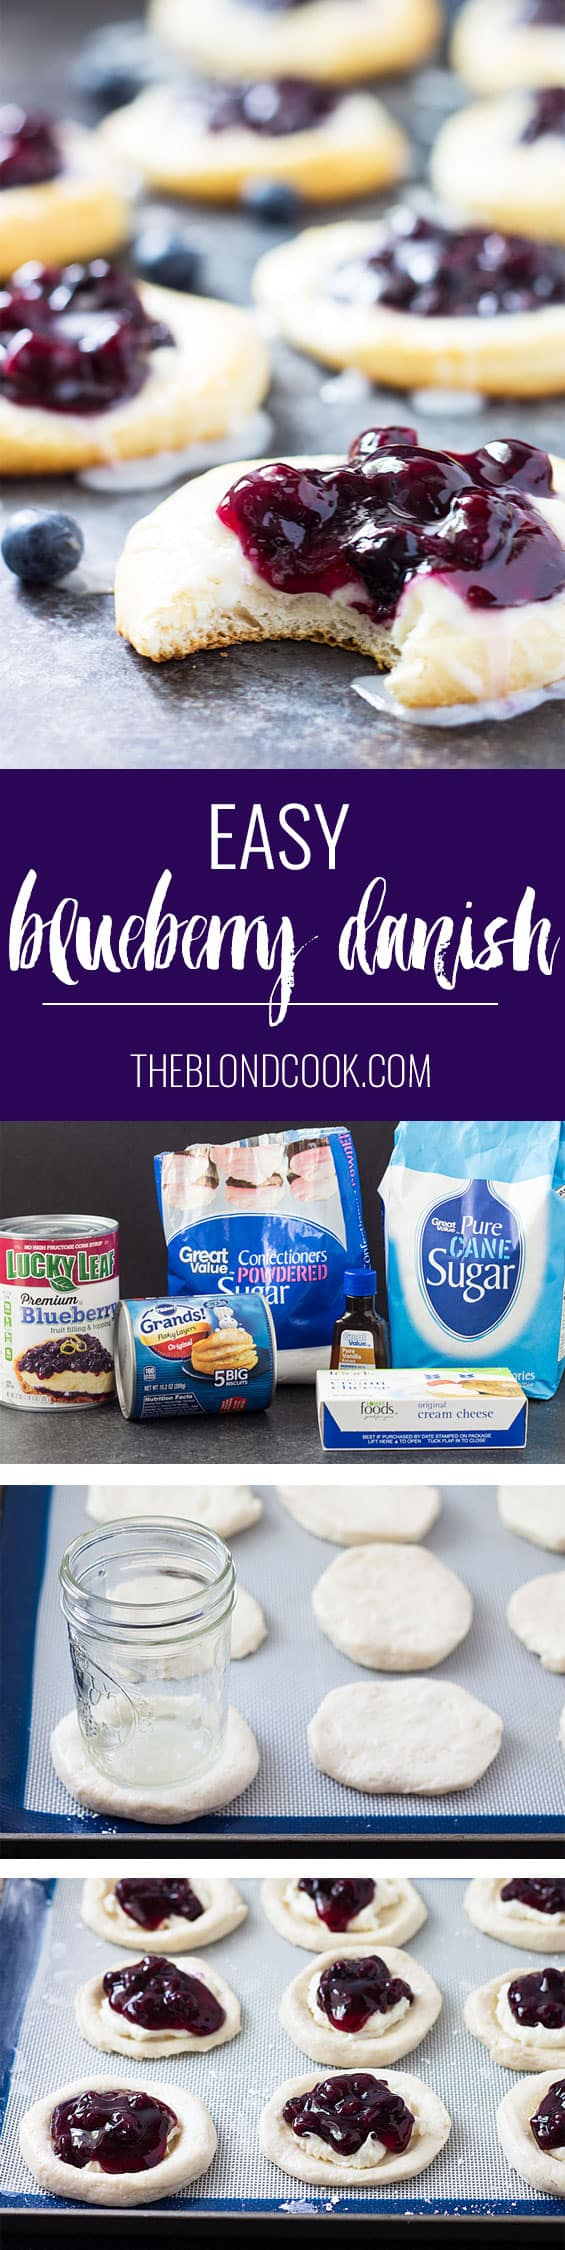 Quick and easy Blueberry Danish using canned biscuits | theblondcook.com